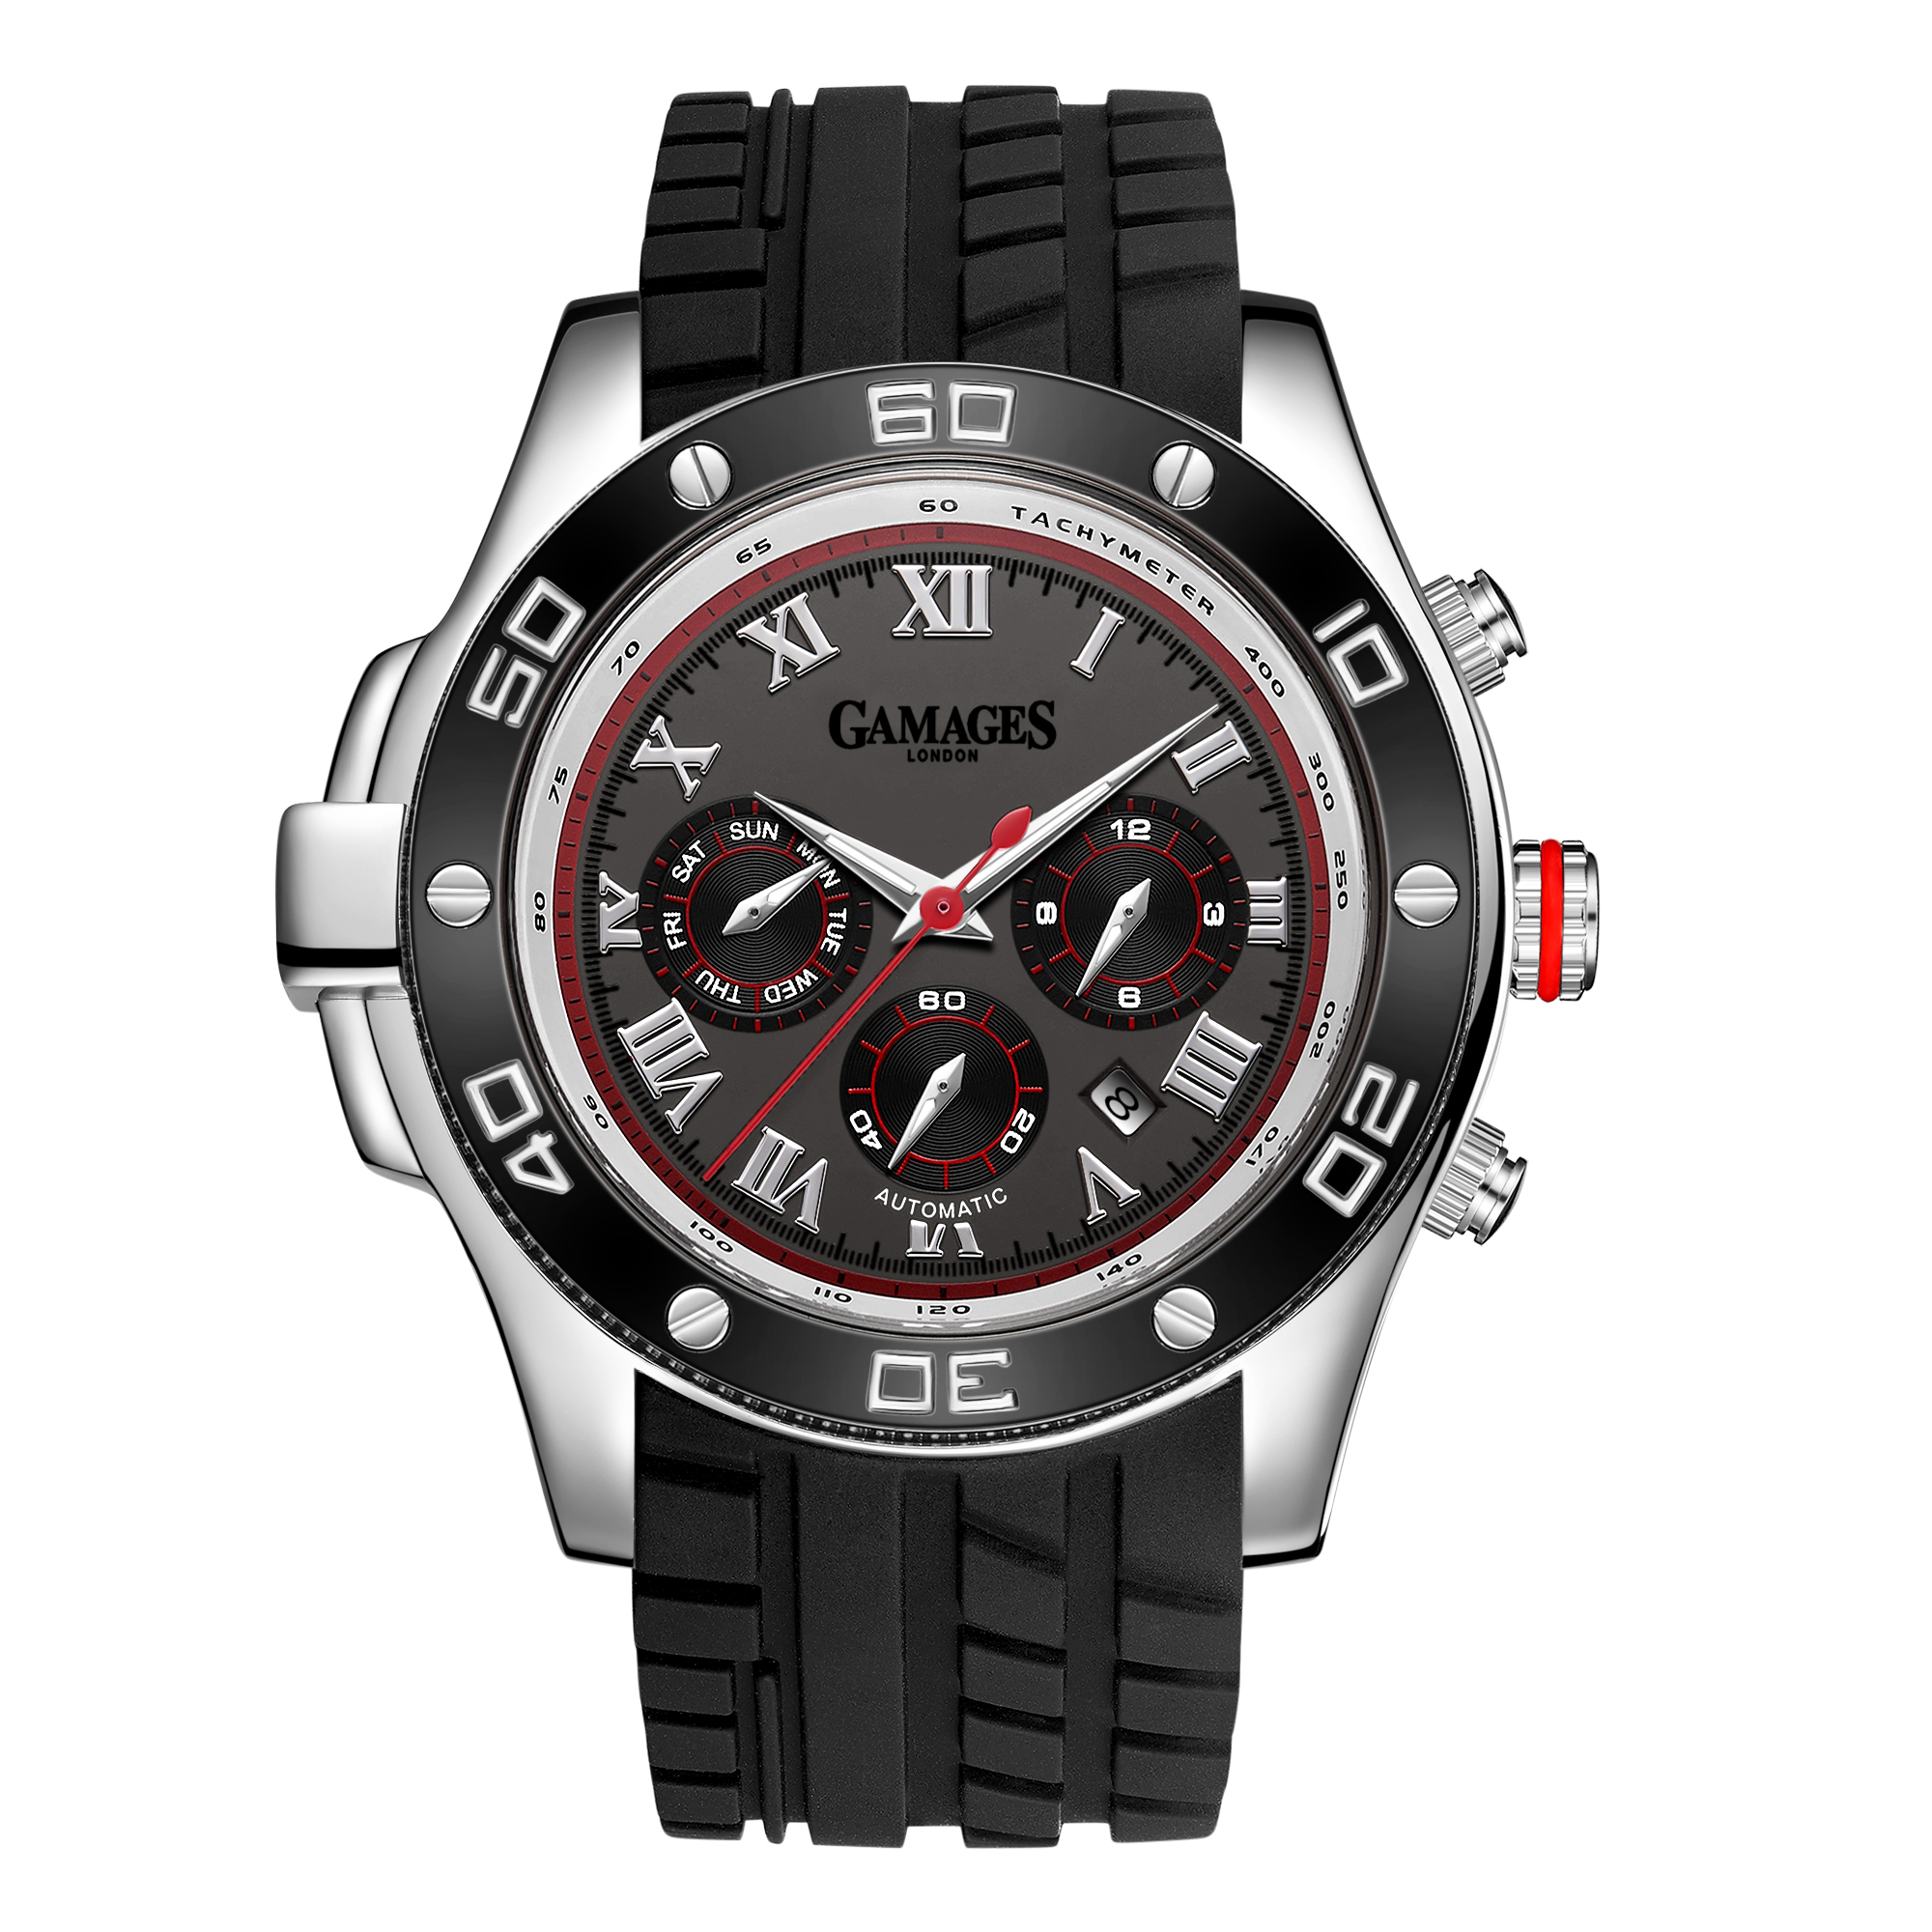 Ltd Edition Hand Assembled Gamages Driver Automatic Silver Grey – 5 Year Warranty & Free Delivery